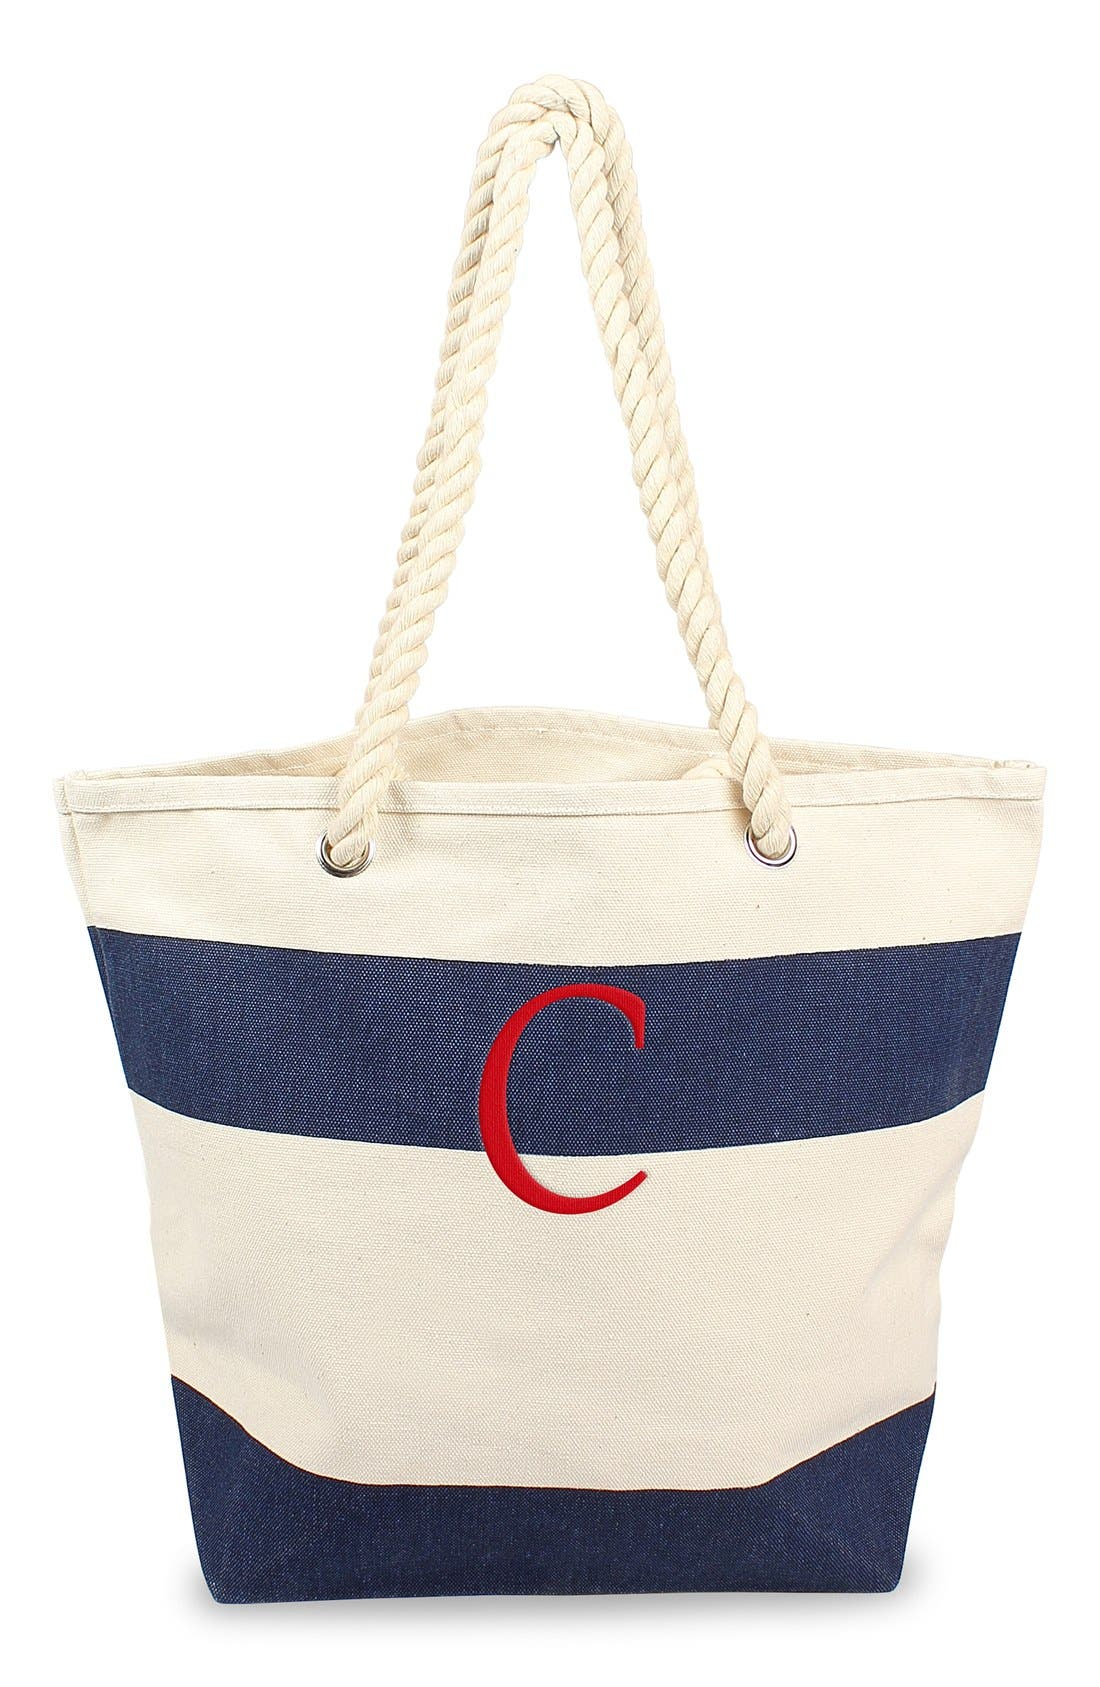 Alternate Image 1 Selected - Cathy's Concepts Monogram Stripe Canvas Tote